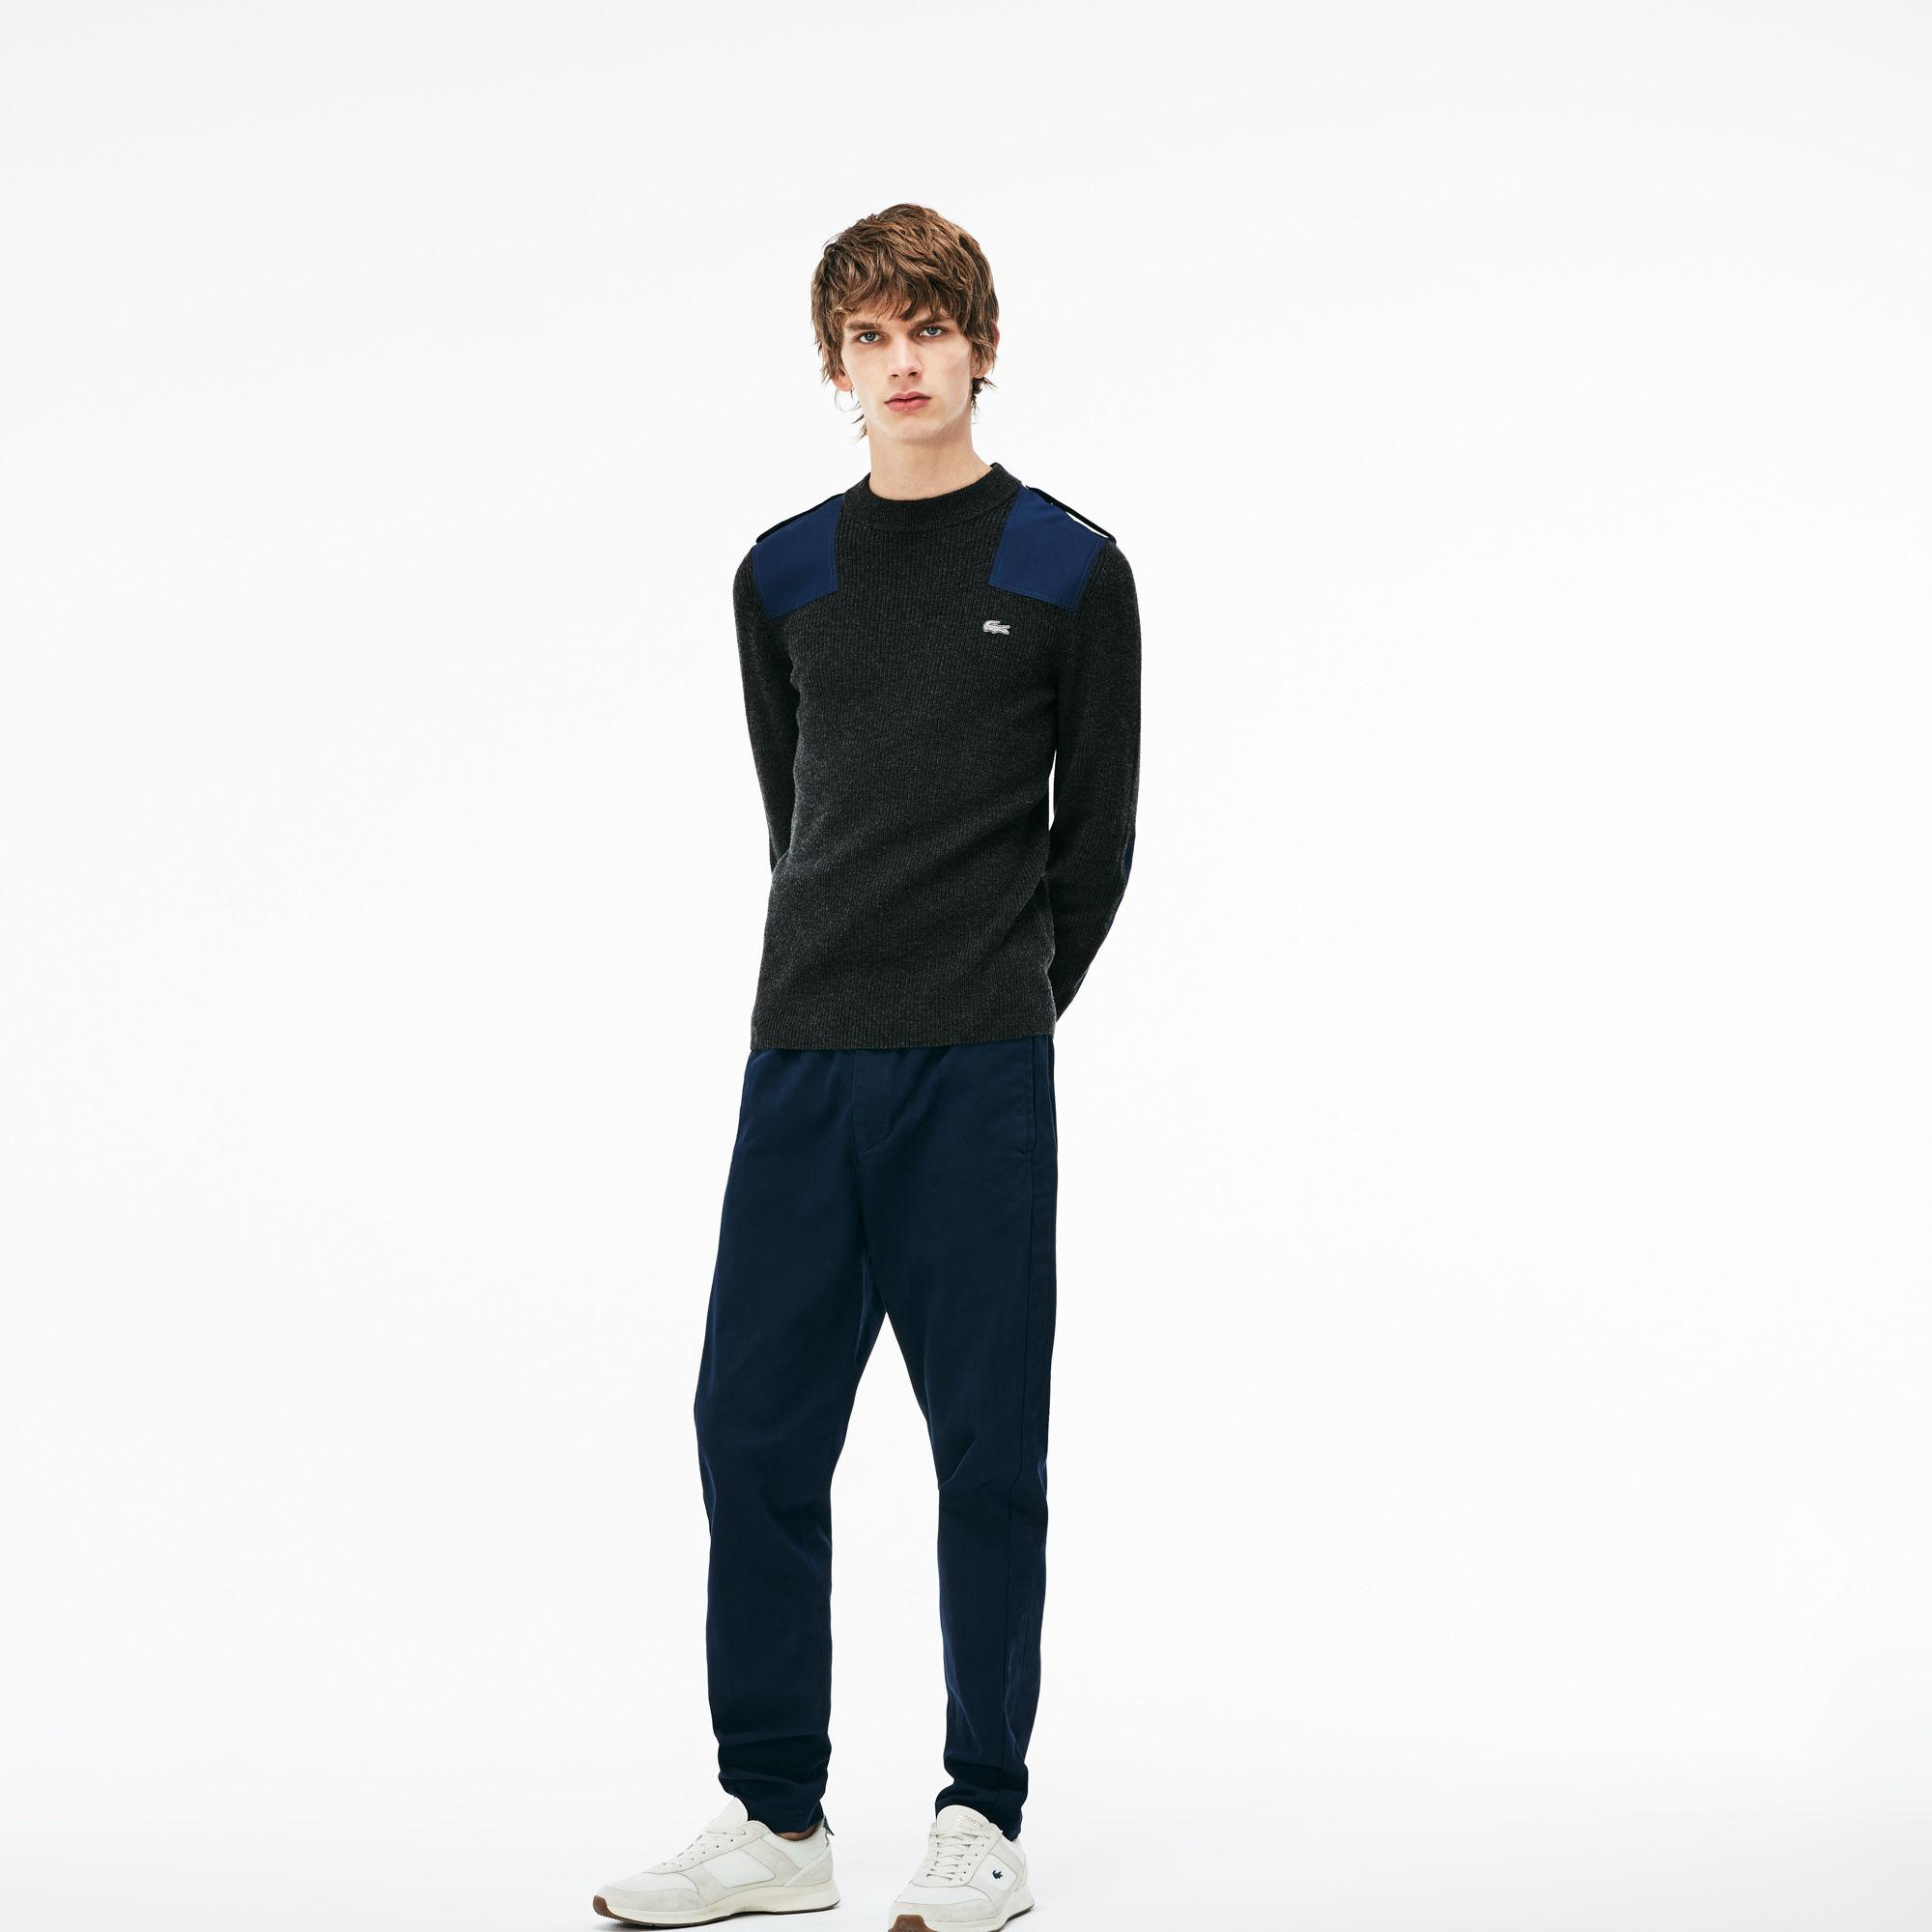 854177b486 Lyst - Lacoste Crew Neck Colorblock Ribbed Wool And Cotton Sweater ...